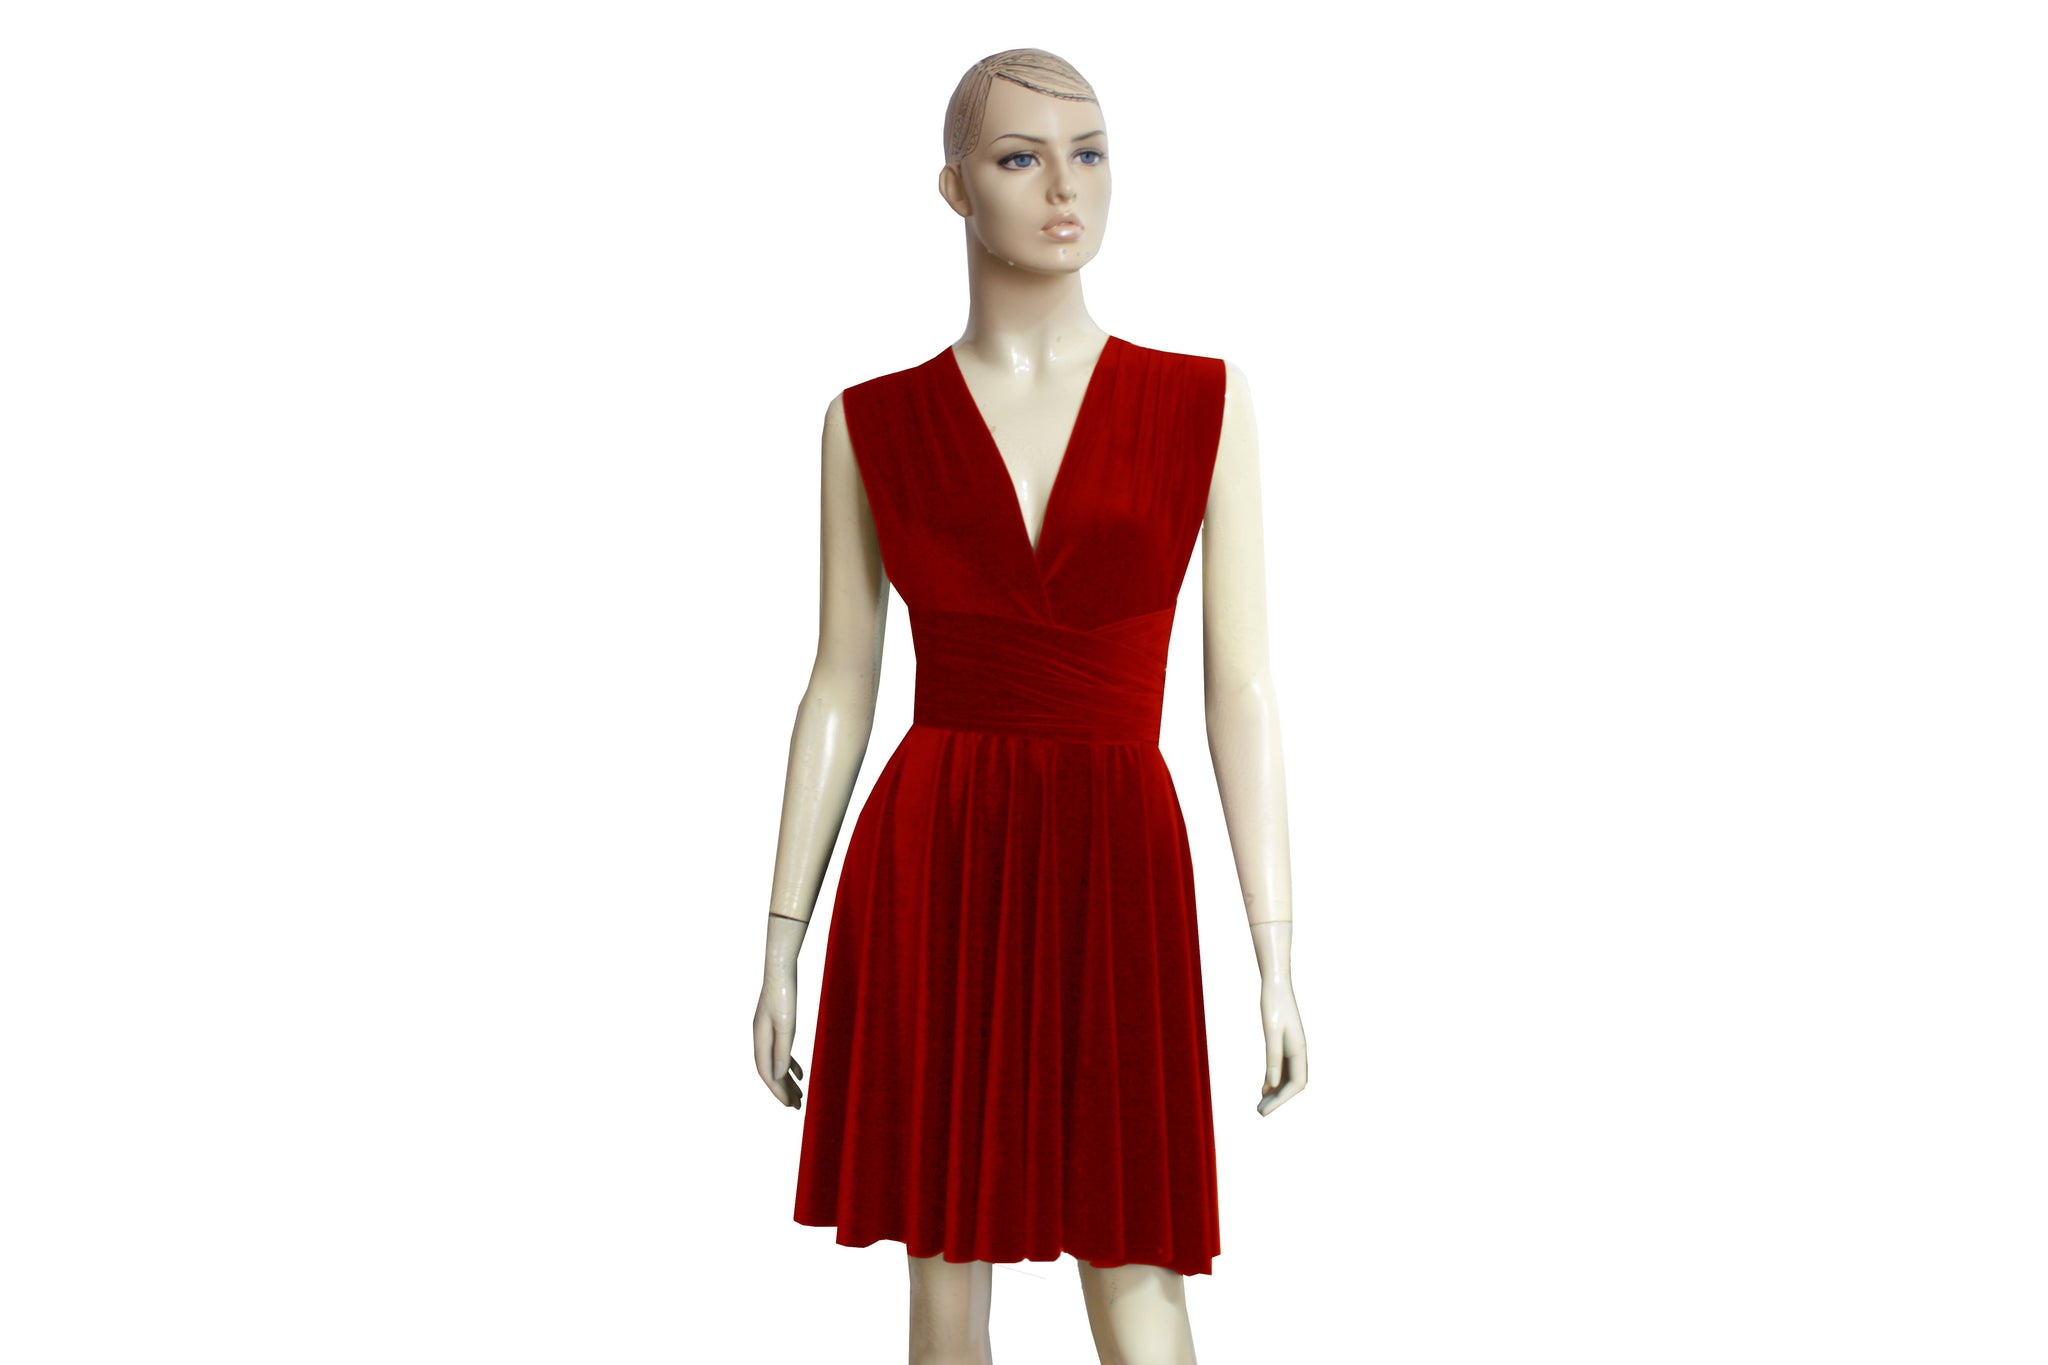 Convertible velvet dress Infinity red dress Bridesmaids infinity dress Plus size prom gown Formal dress XS-5XL